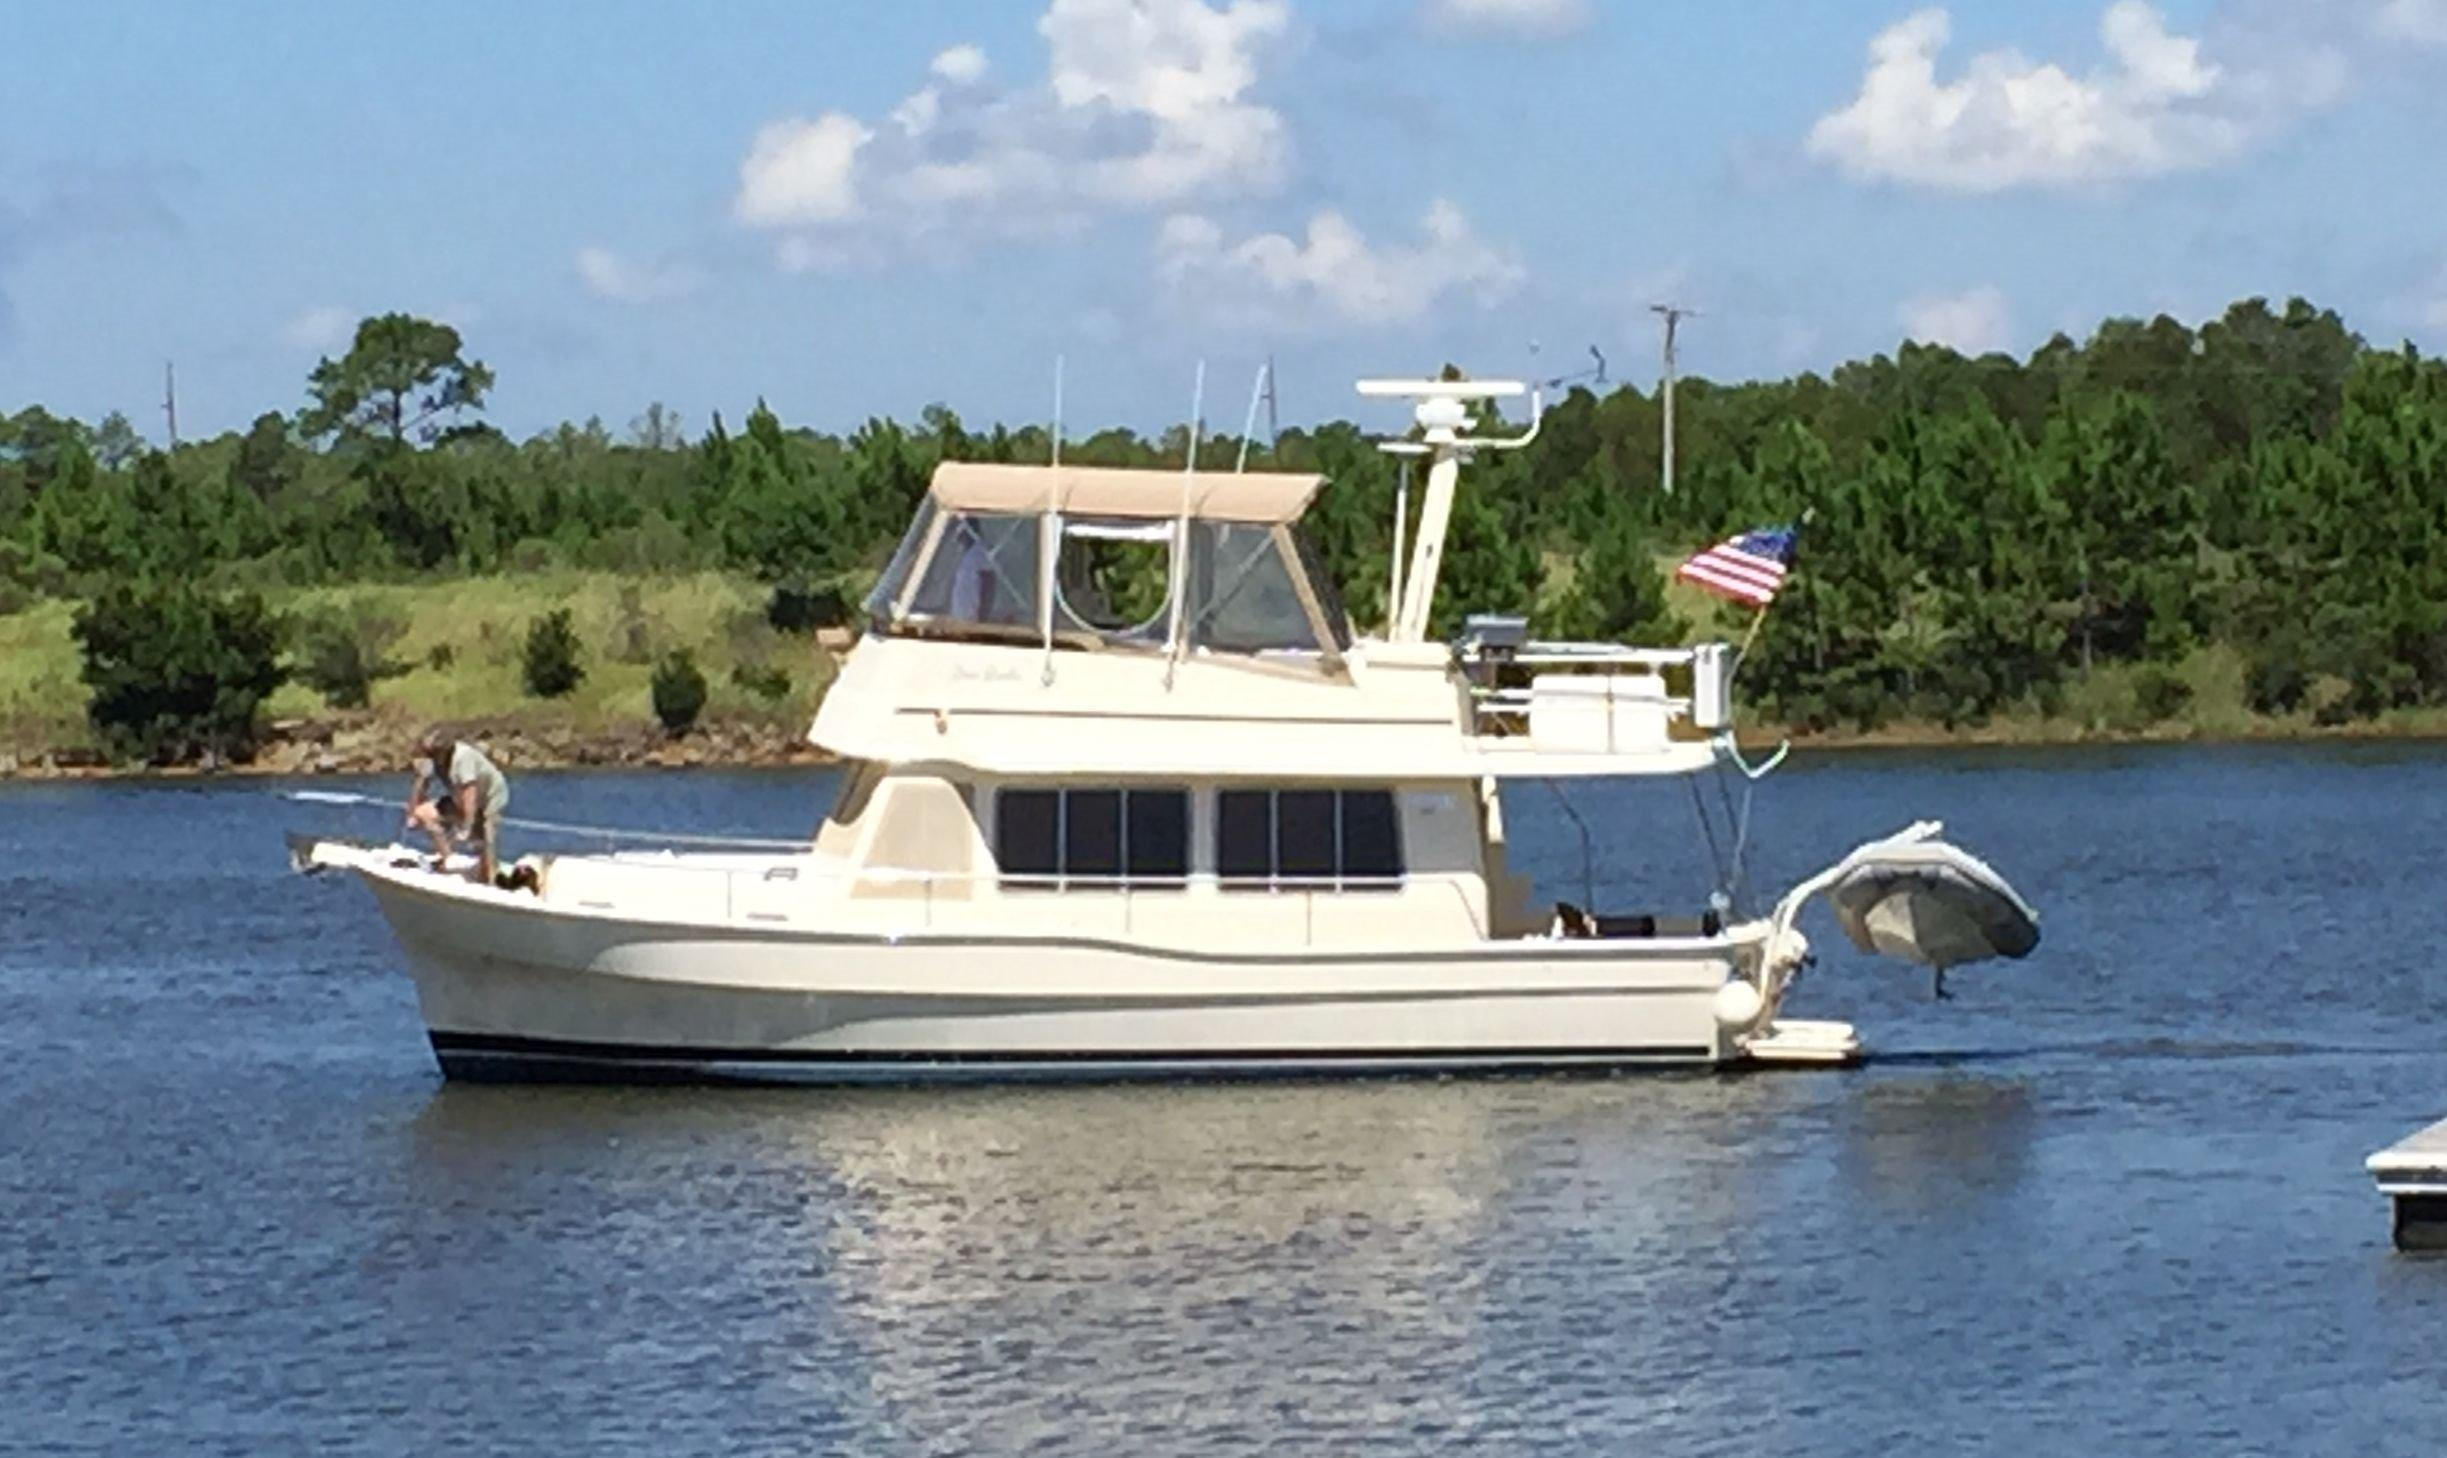 5953099_20160928114355094_1_XLARGE&w=924&h=693&t=1475091861000 2004 mainship 400 trawler power boat for sale www yachtworld com  at edmiracle.co